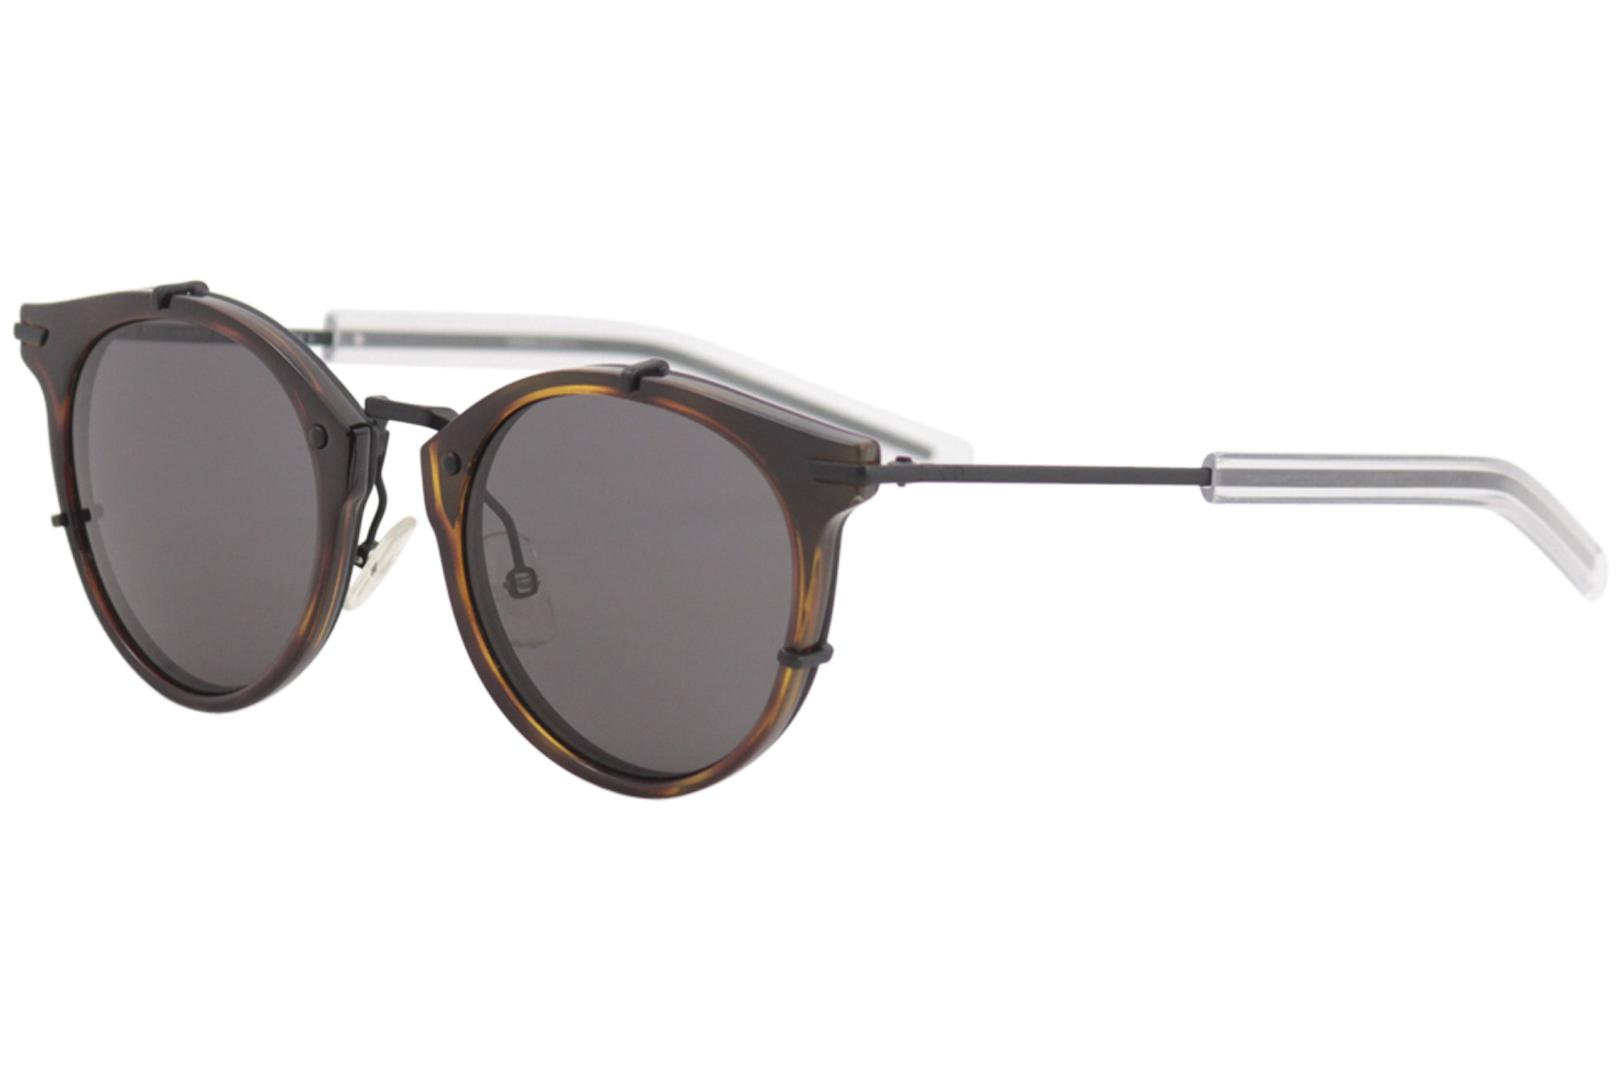 10c5230269 Christian Dior Women s 0196S 0196 S Fashion Round Sunglasses